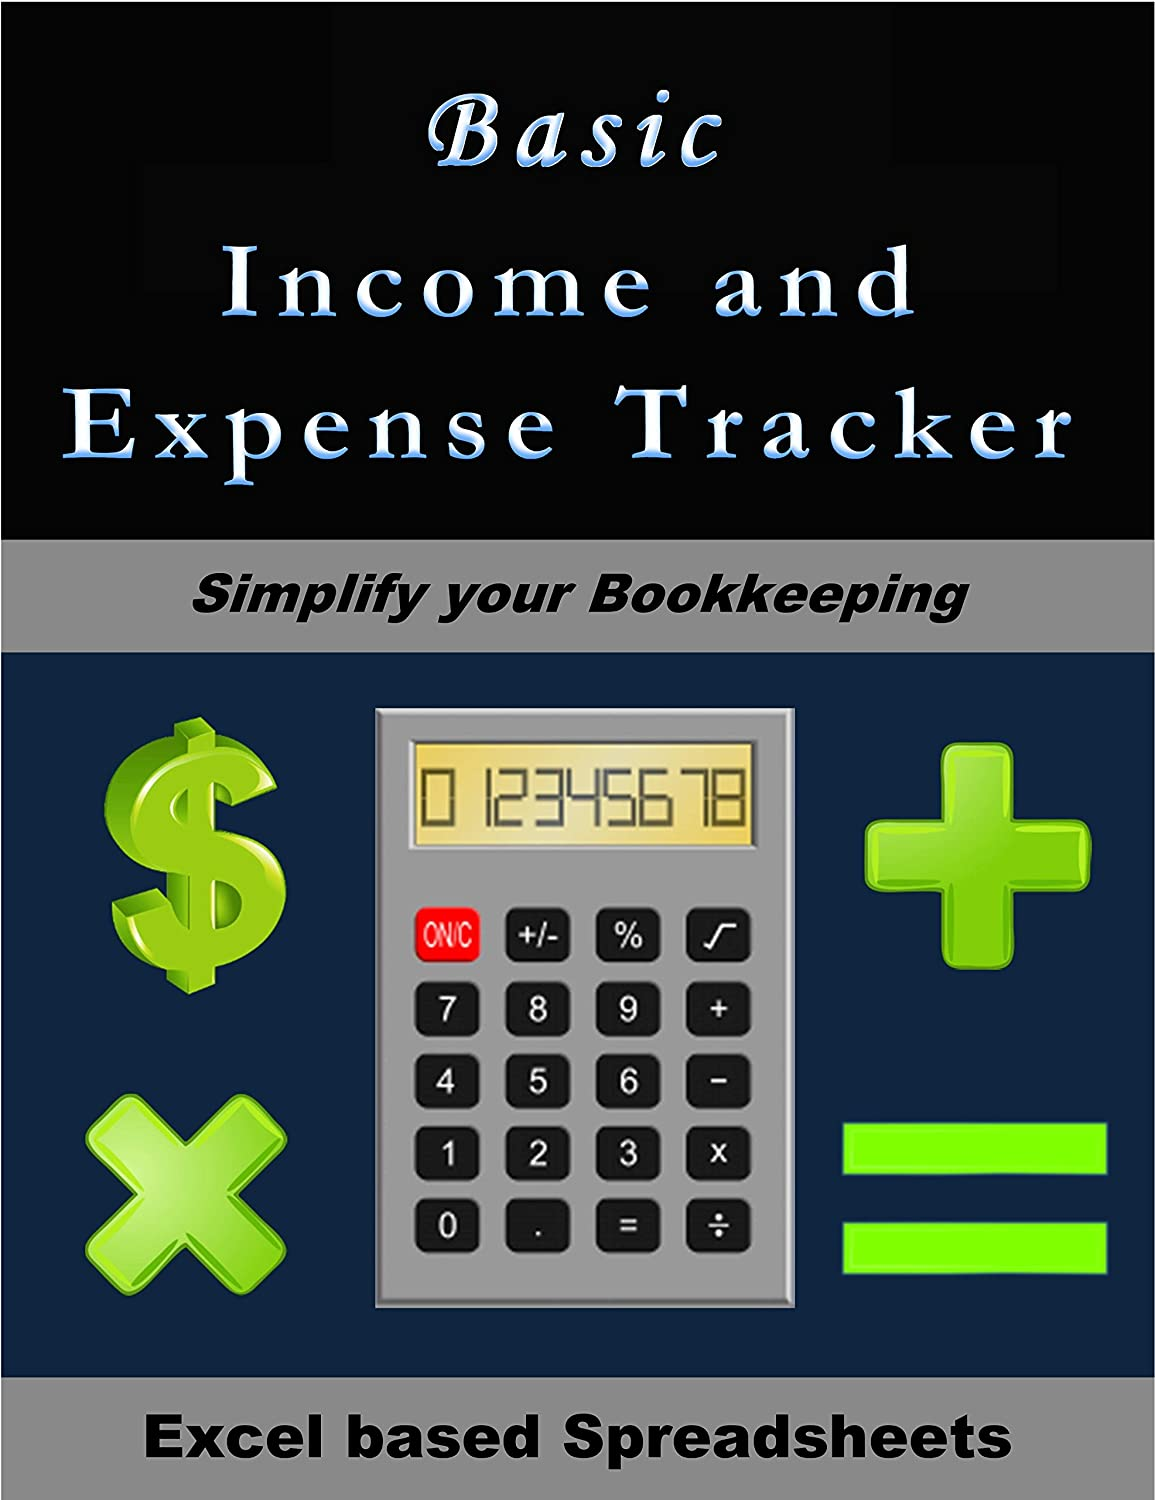 Basic Income and Expense Tracker